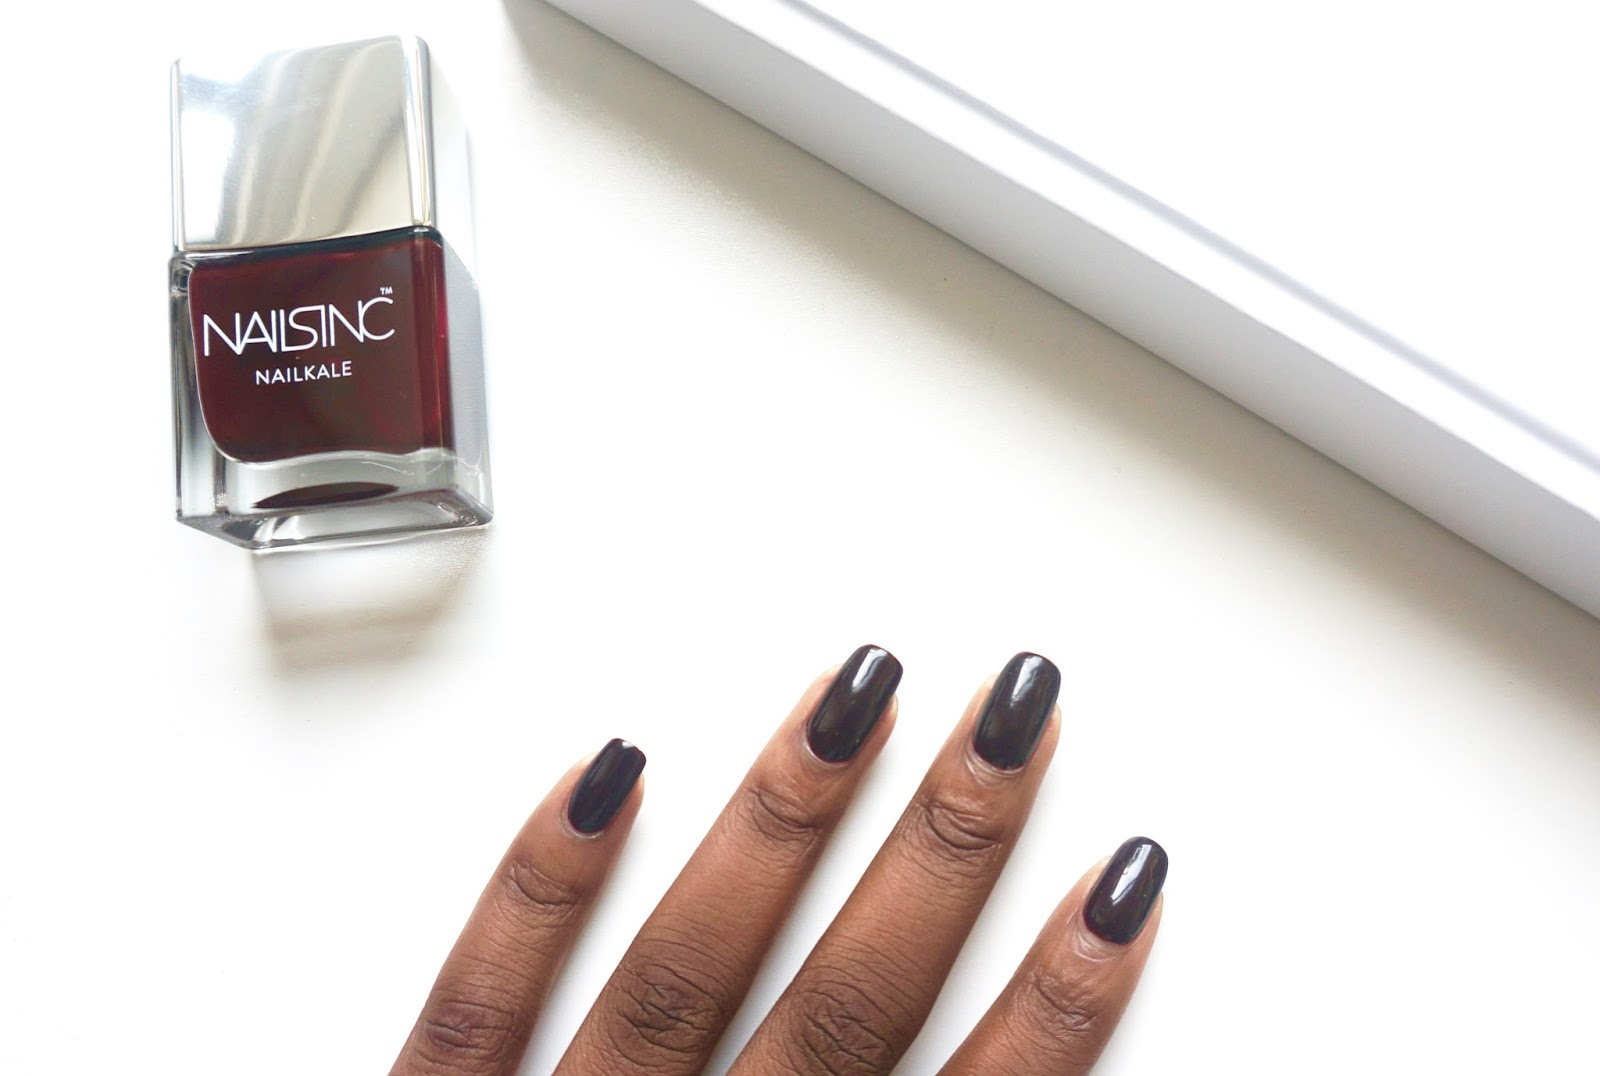 NAIL PAINT OF THE WEEK: NAILS INC. NAILKALE VICTORIA | KUIYA\'S KLOSET